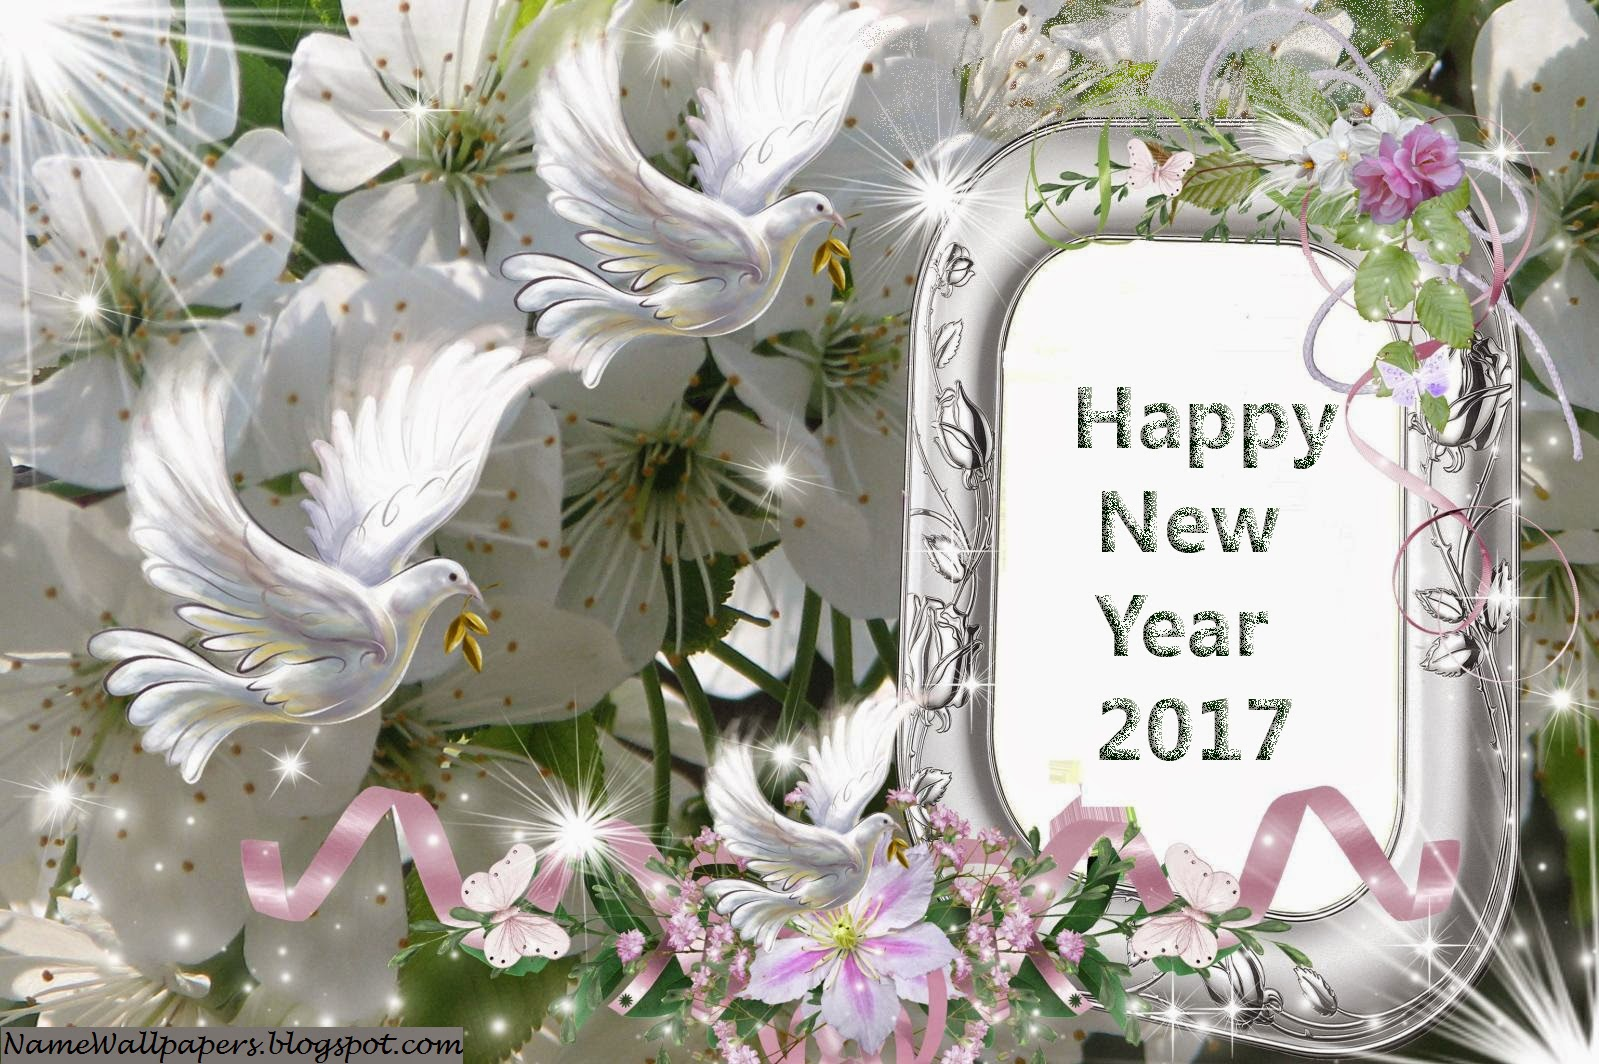 New Year 2017 Wallpaper Hd: Happy New Year 2017 Wallpapers HD Images Pictures 2017